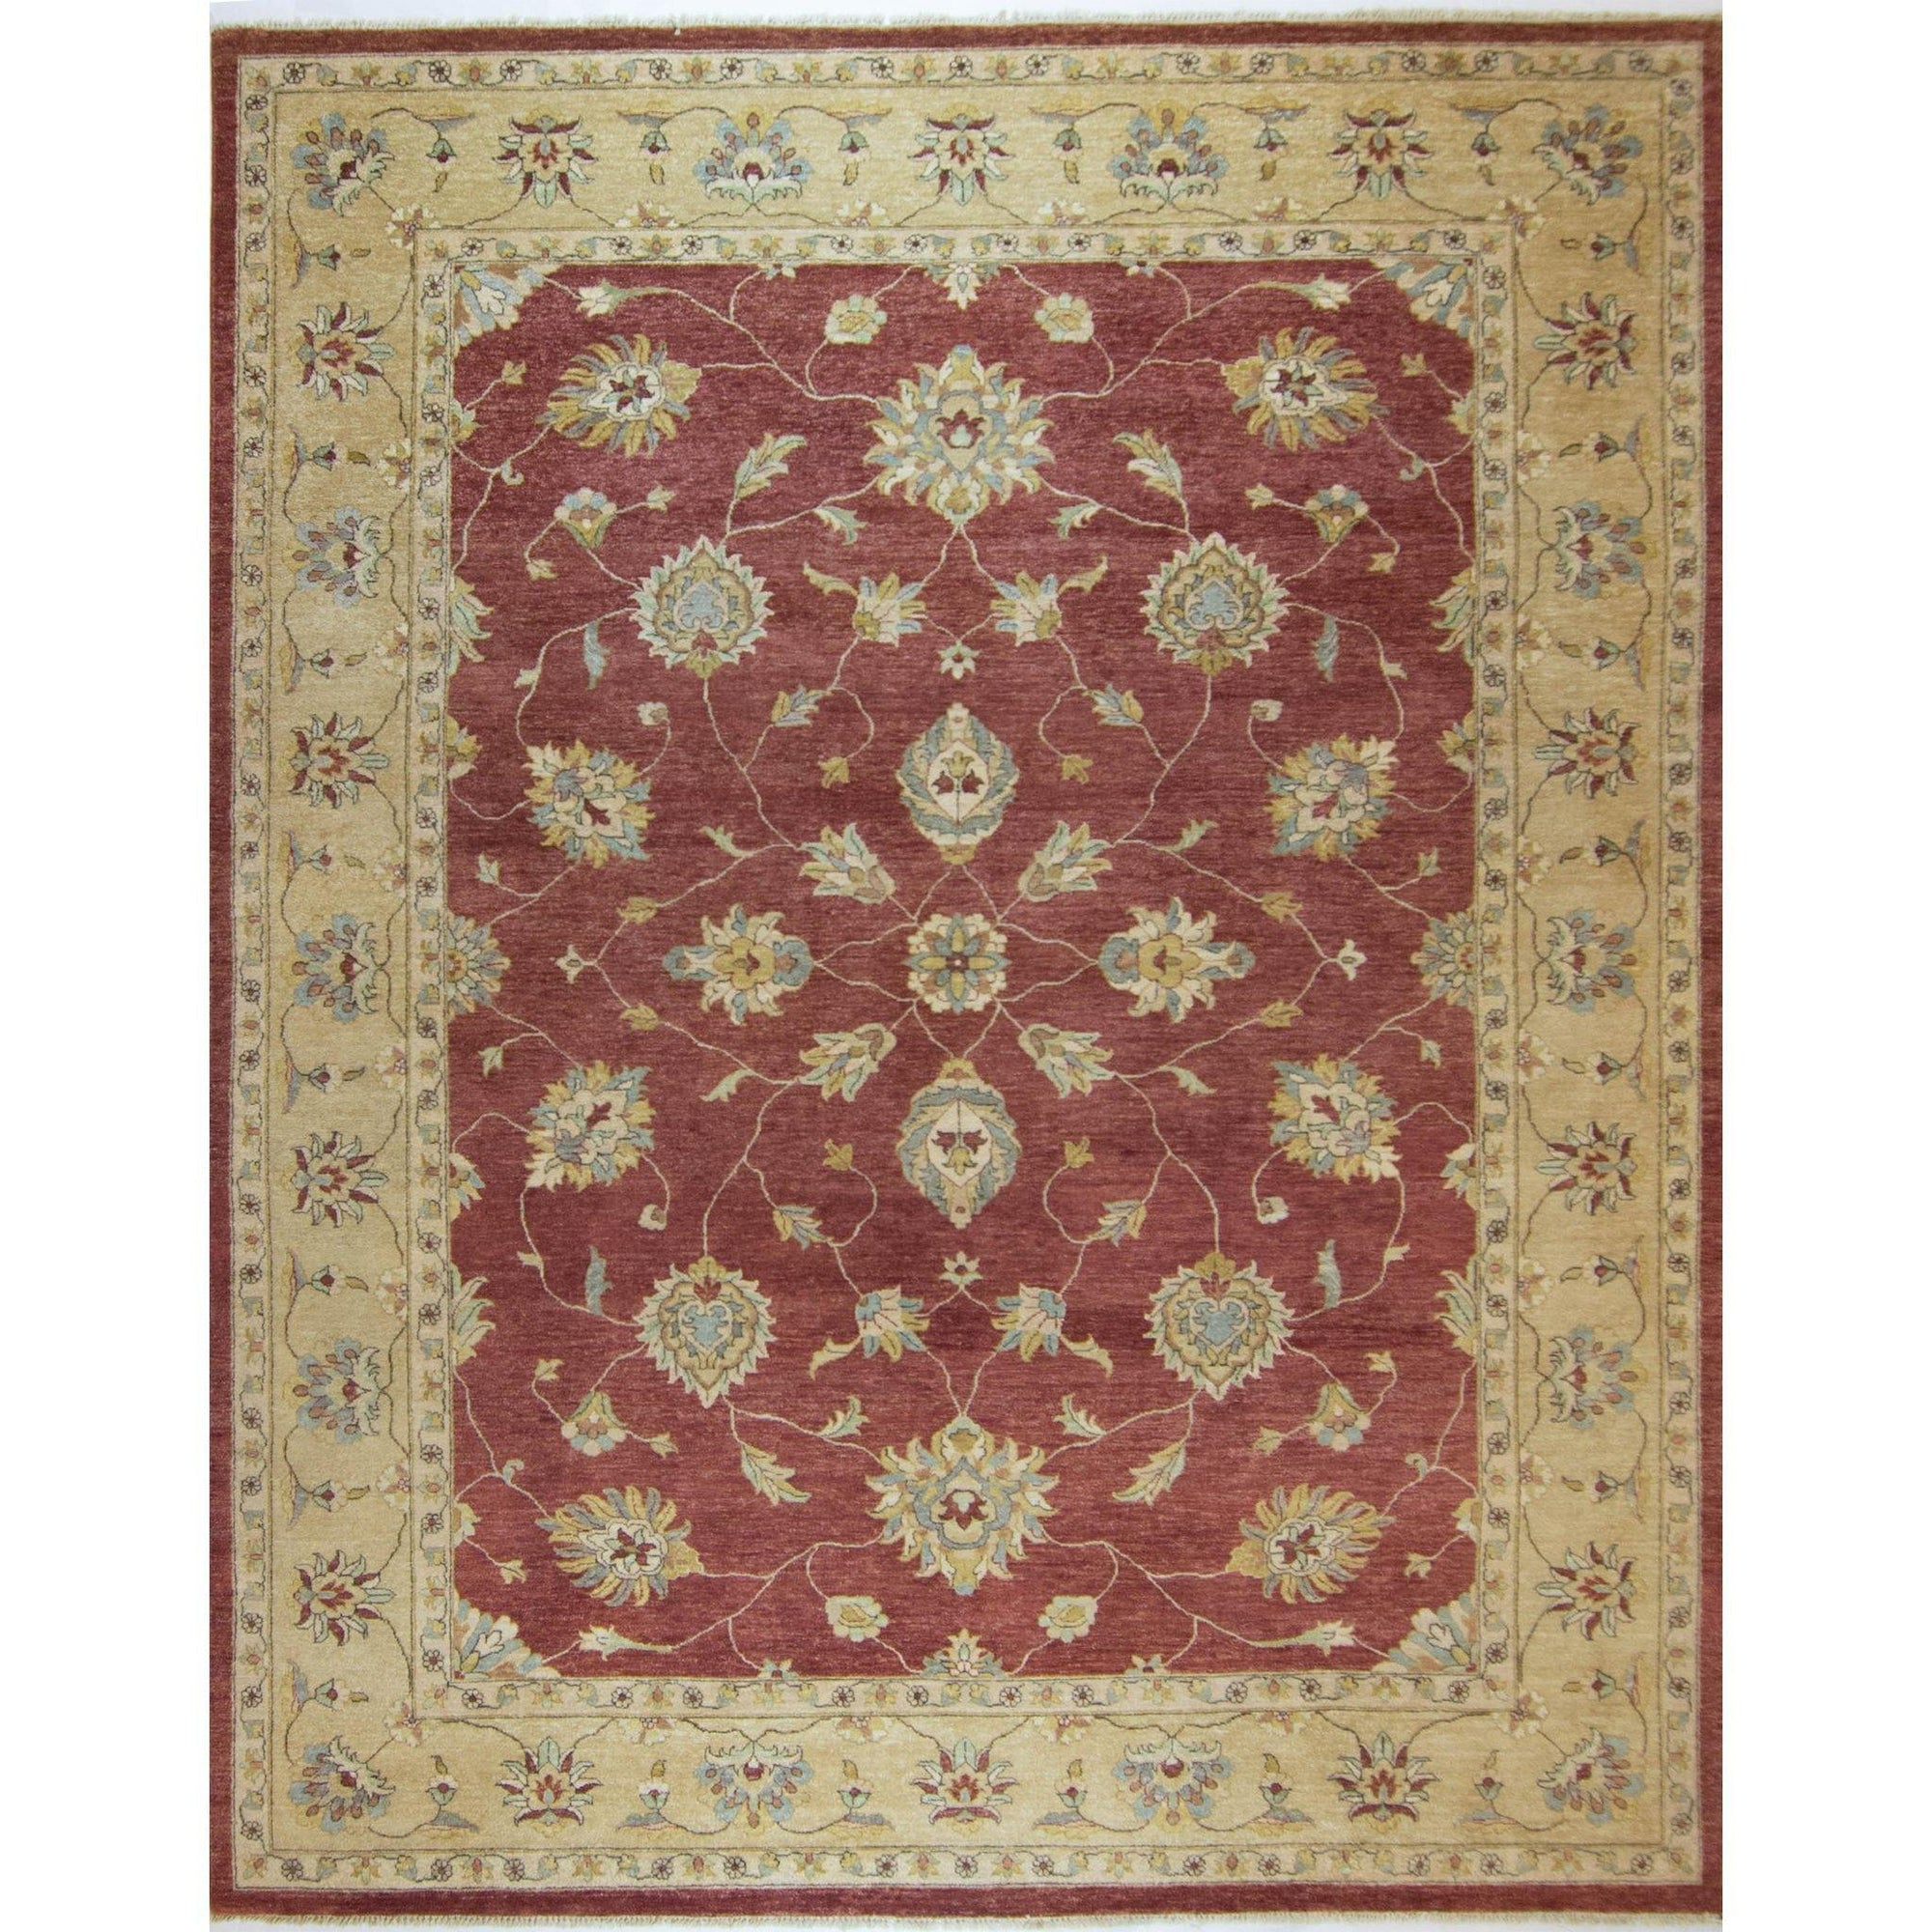 Fine Hand-knotted Zeigler Rug 279cm x 368cm Persian-Rug | House-of-Haghi | NewMarket | Auckland | NZ | Handmade Persian Rugs | Hand Knotted Persian Rugs